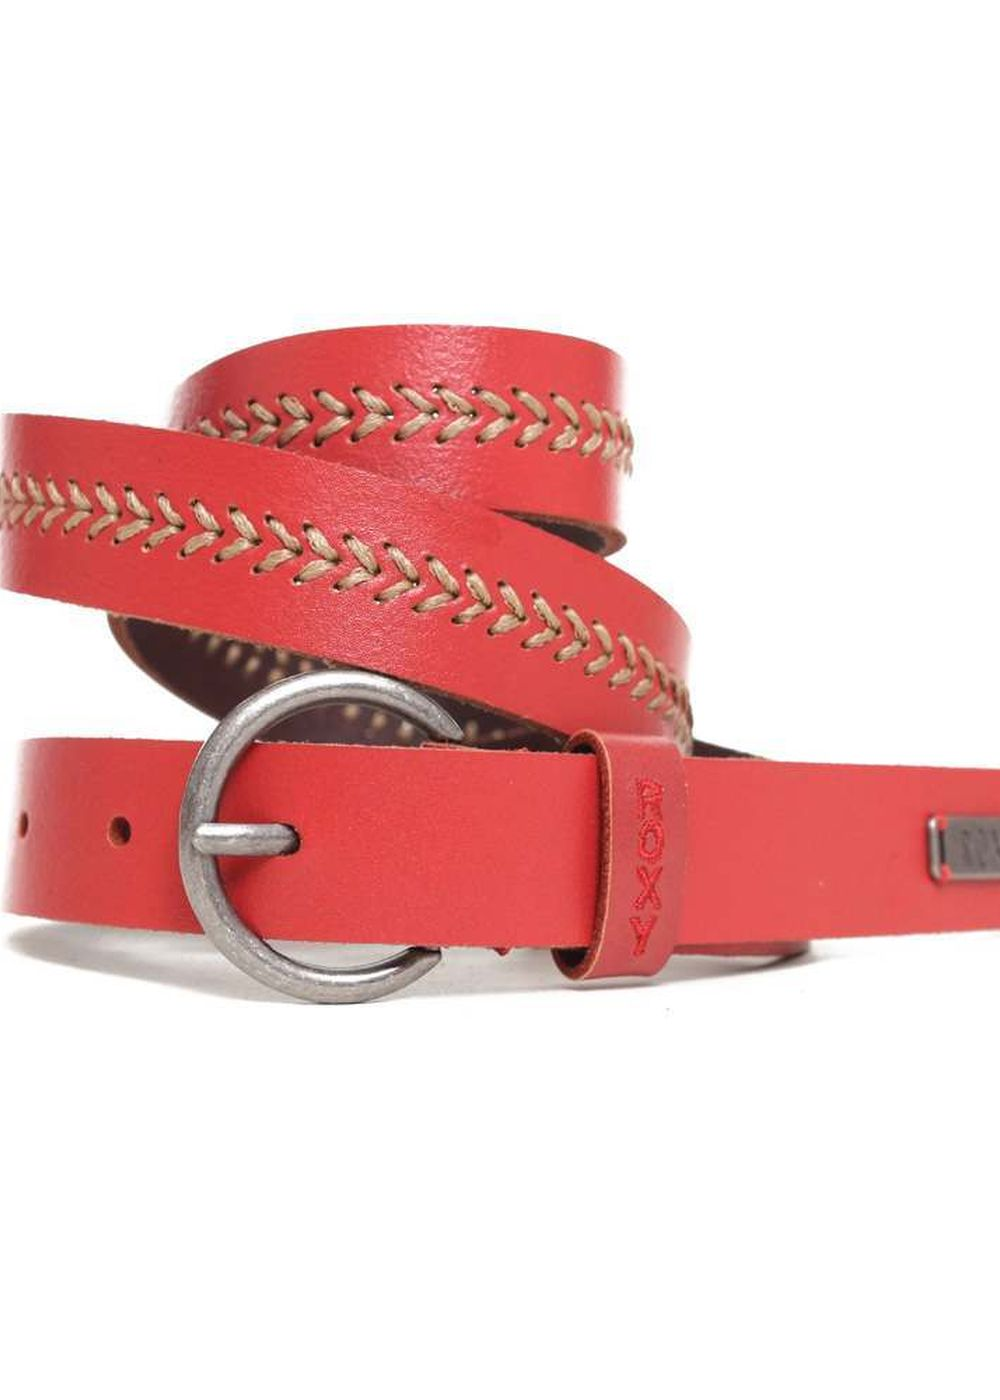 ROXY MOOD POP LEATHER BELT Berrie Red